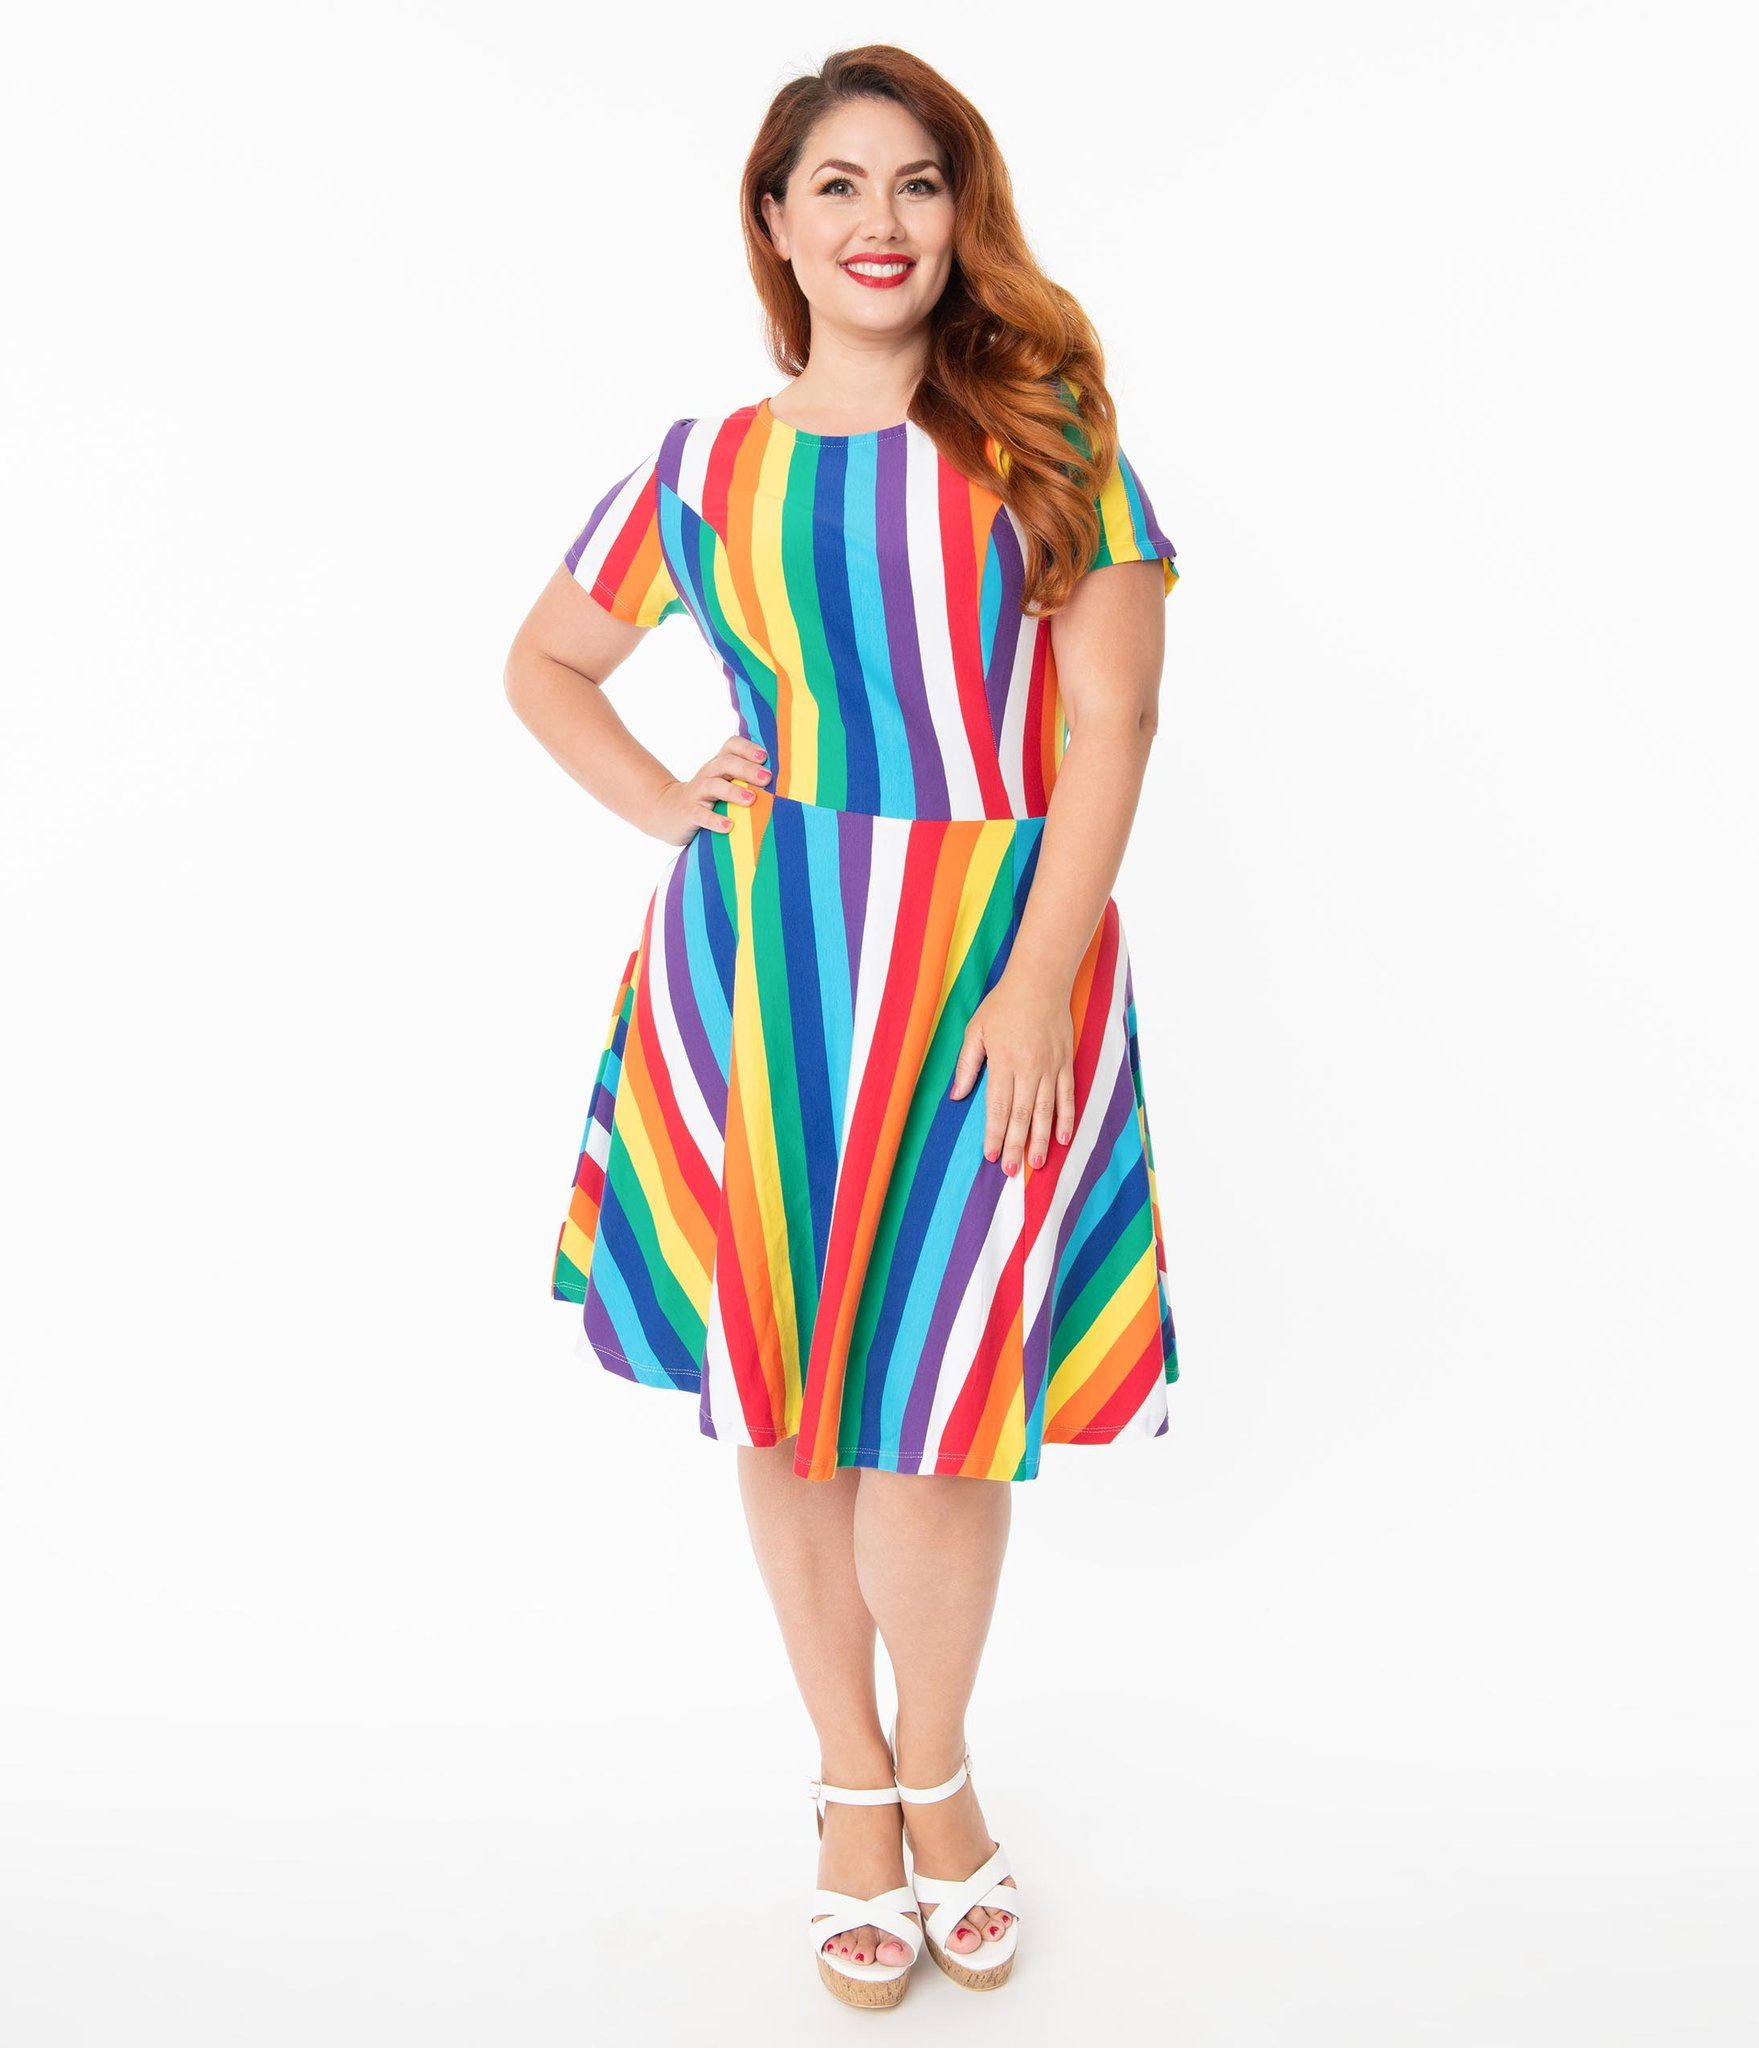 plus size pride outfit